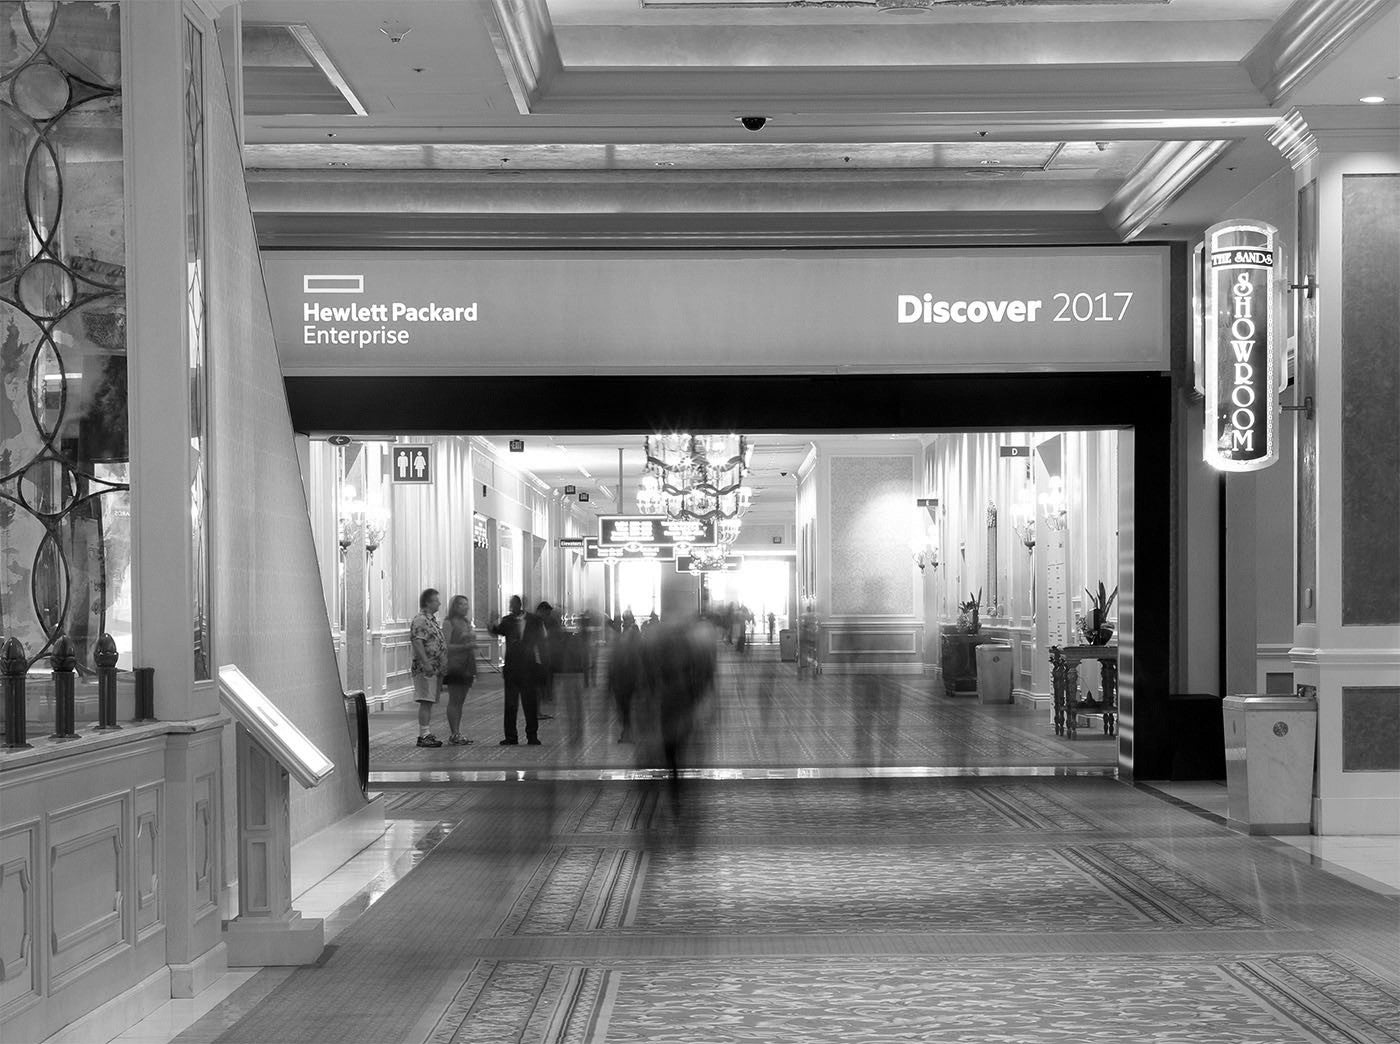 Day 0: HPE Discover 2017 Las Vegas